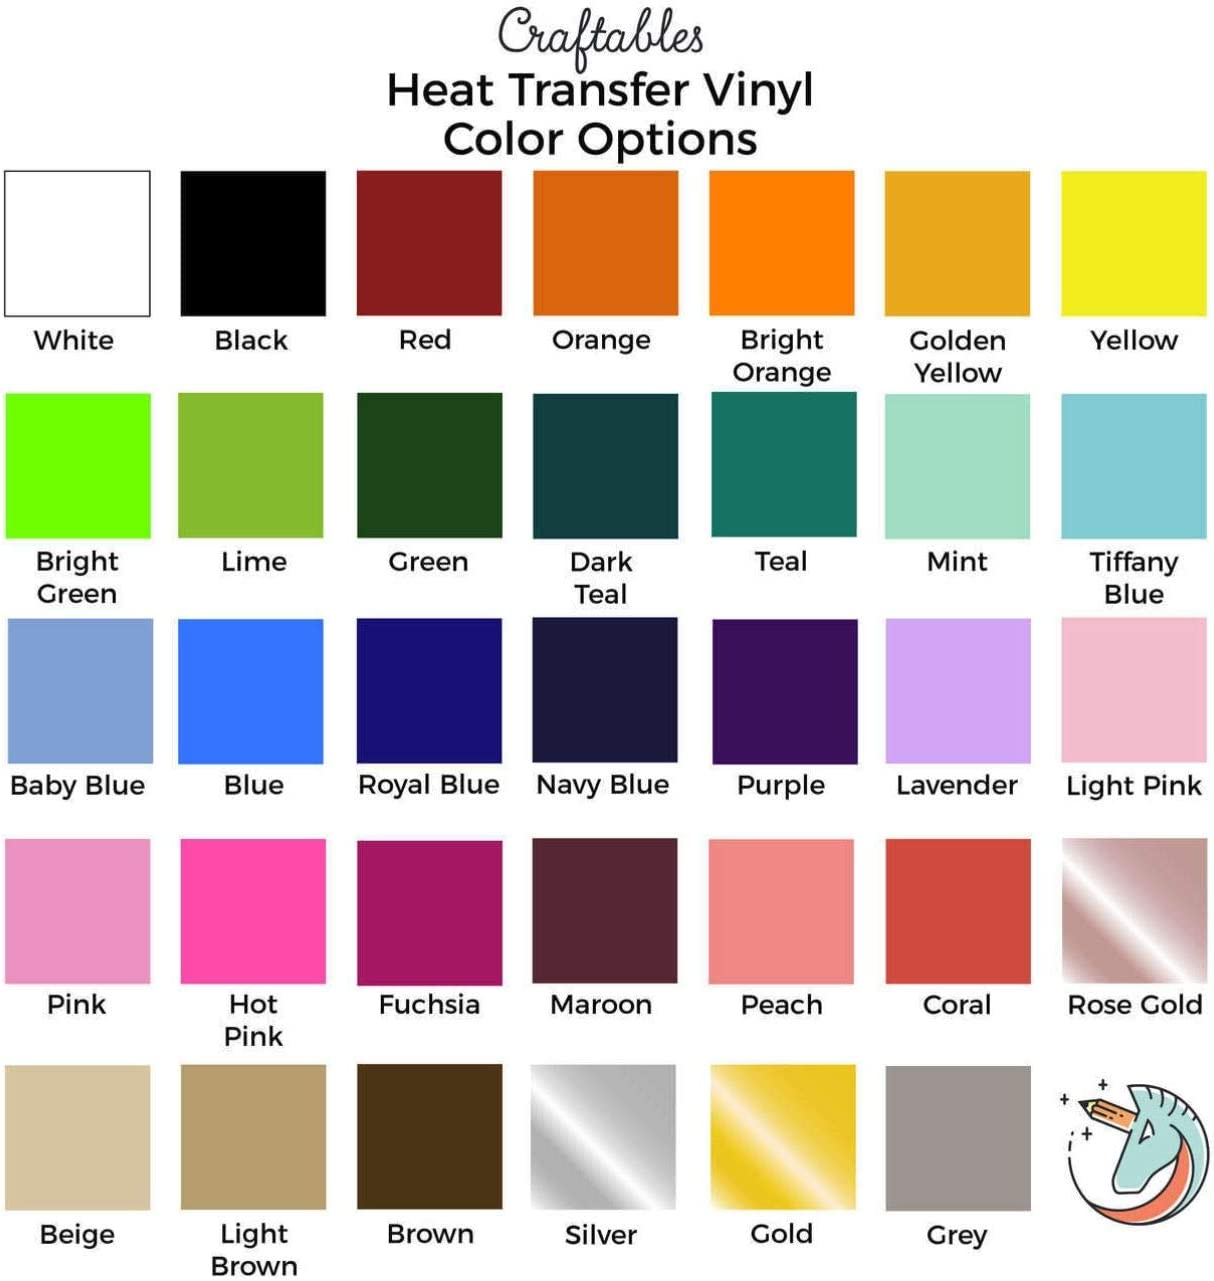 Craftables Bright Orange Heat Transfer Vinyl Roll HTV 11 ft Guaranteed Size - Easy to Weed Tshirt Iron on Vinyl for Silhouette Cameo Heat Press Ships Flat Cricut All Craft Cutters